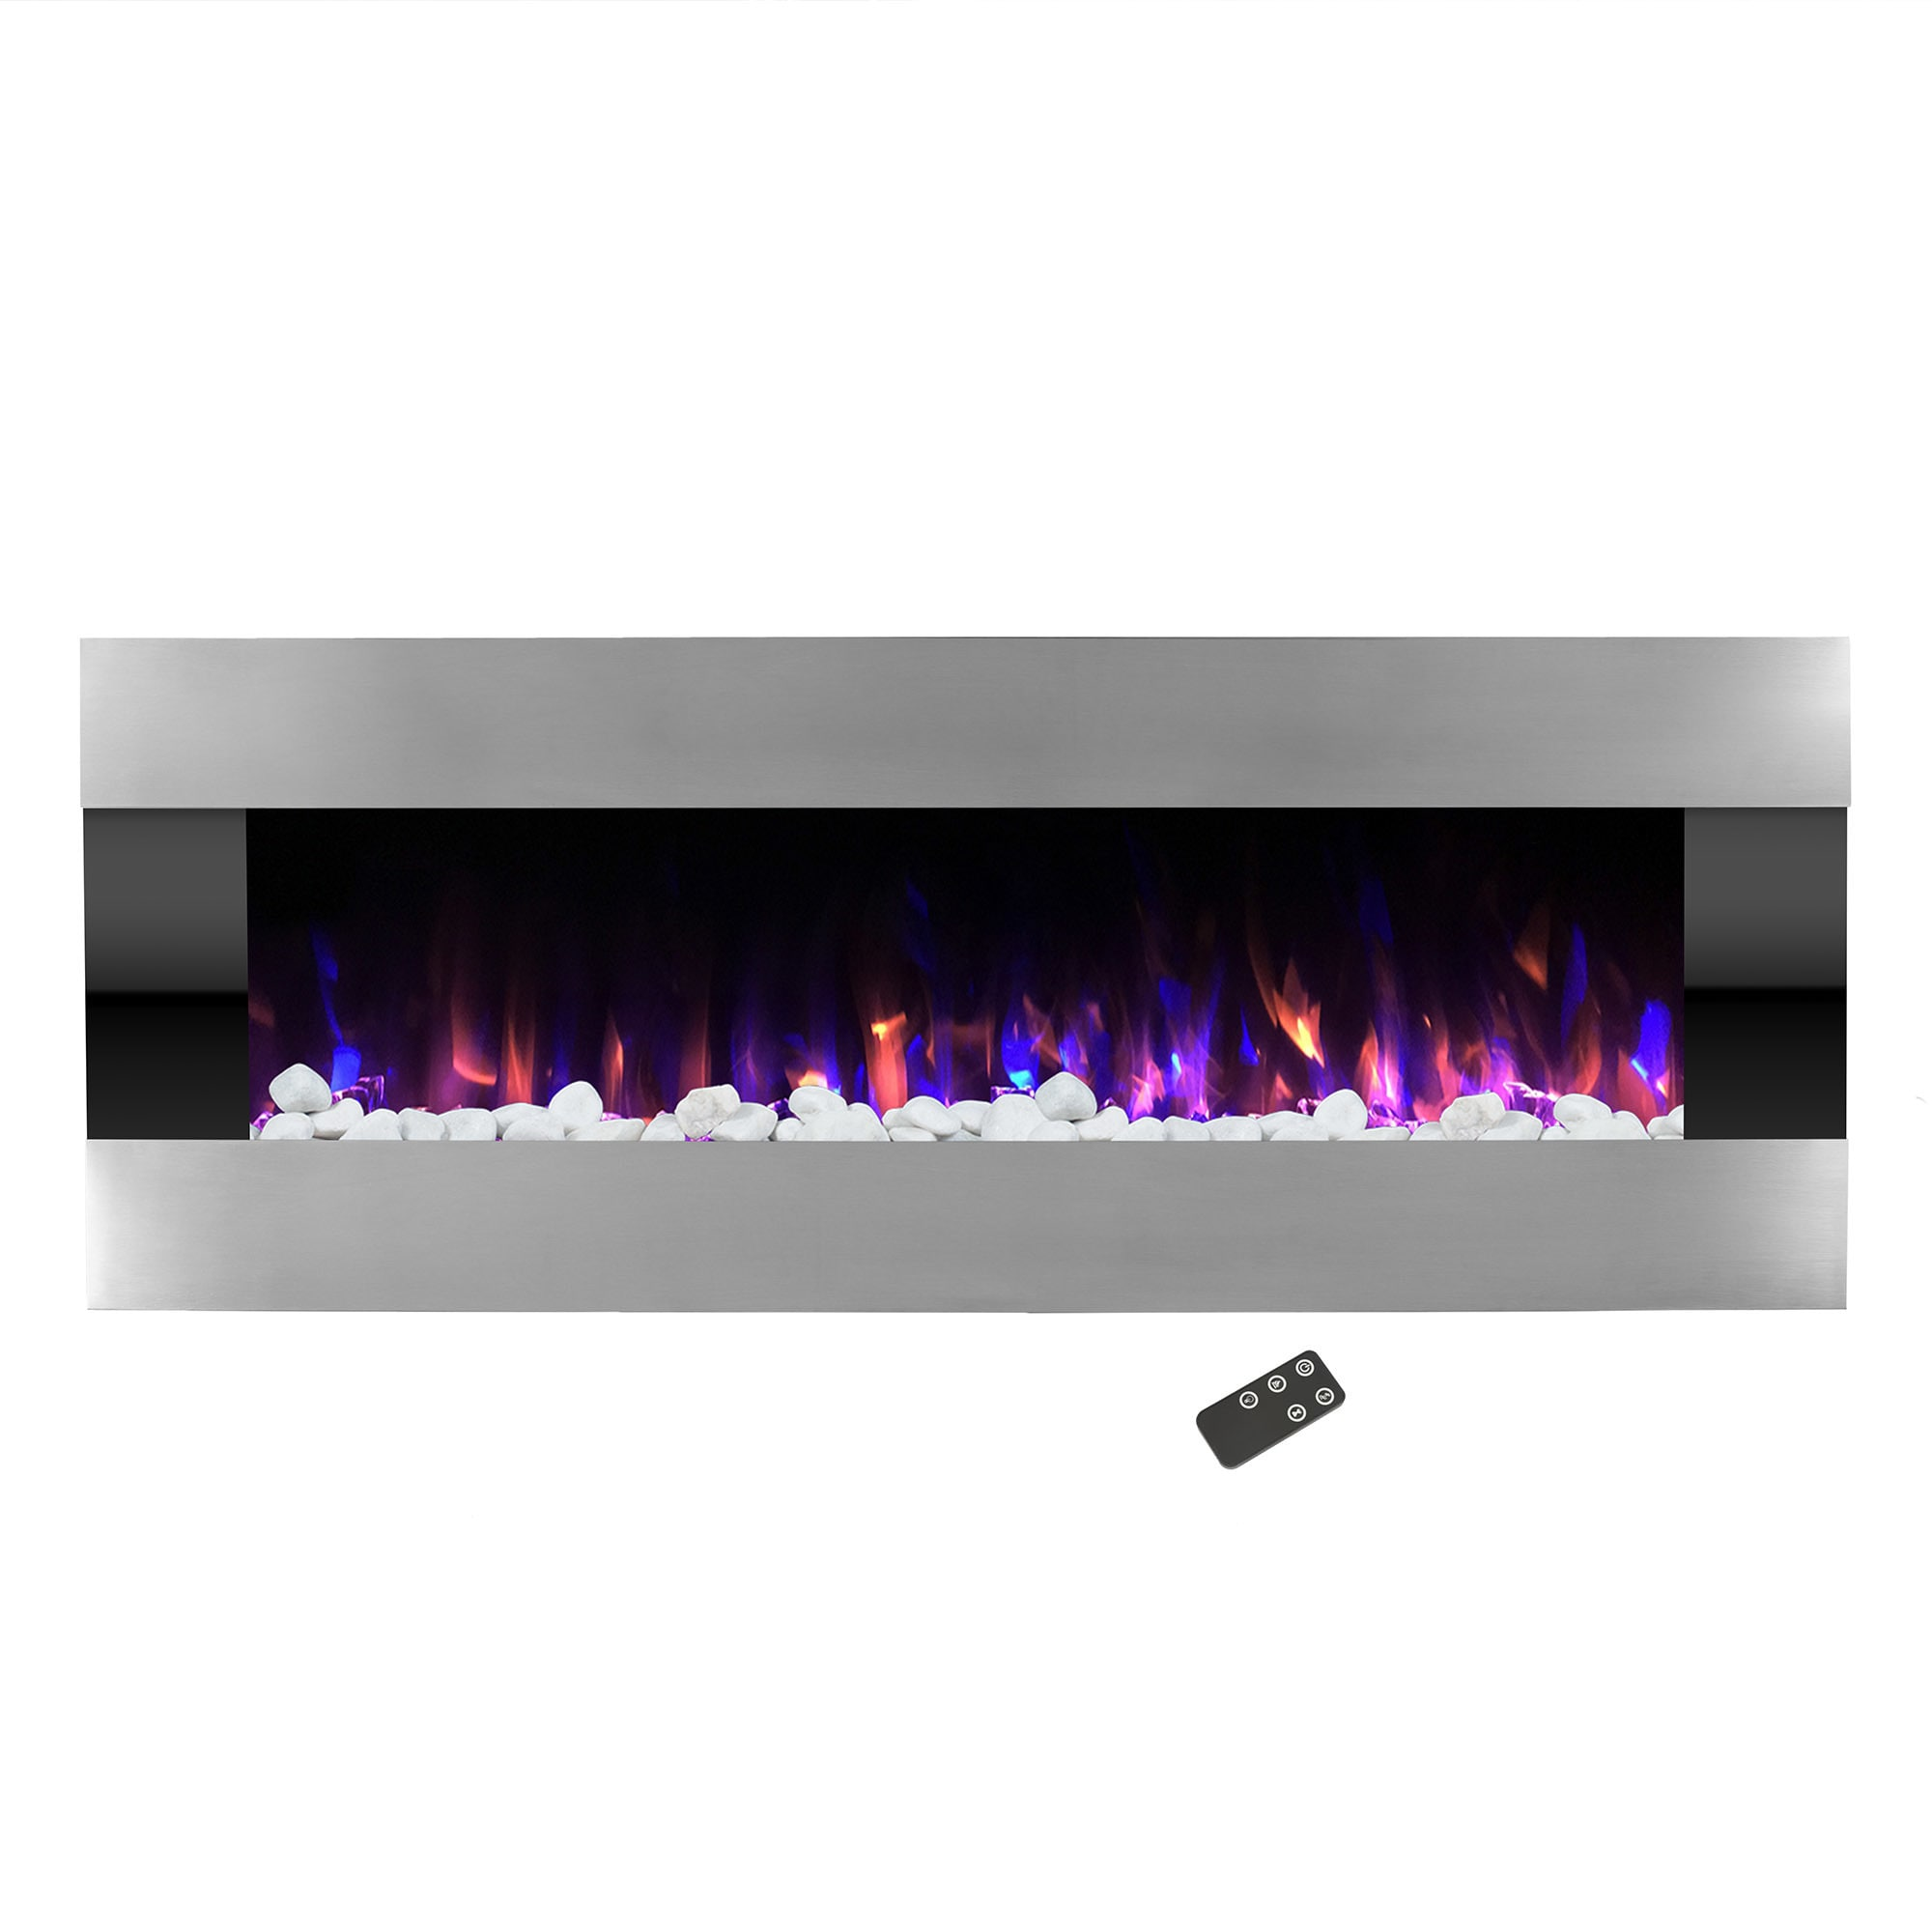 Electric Fireplace Wall Mounted With Led Fire And Ice Flame Adjule Heat Remote Control 54 Inch By Northwest